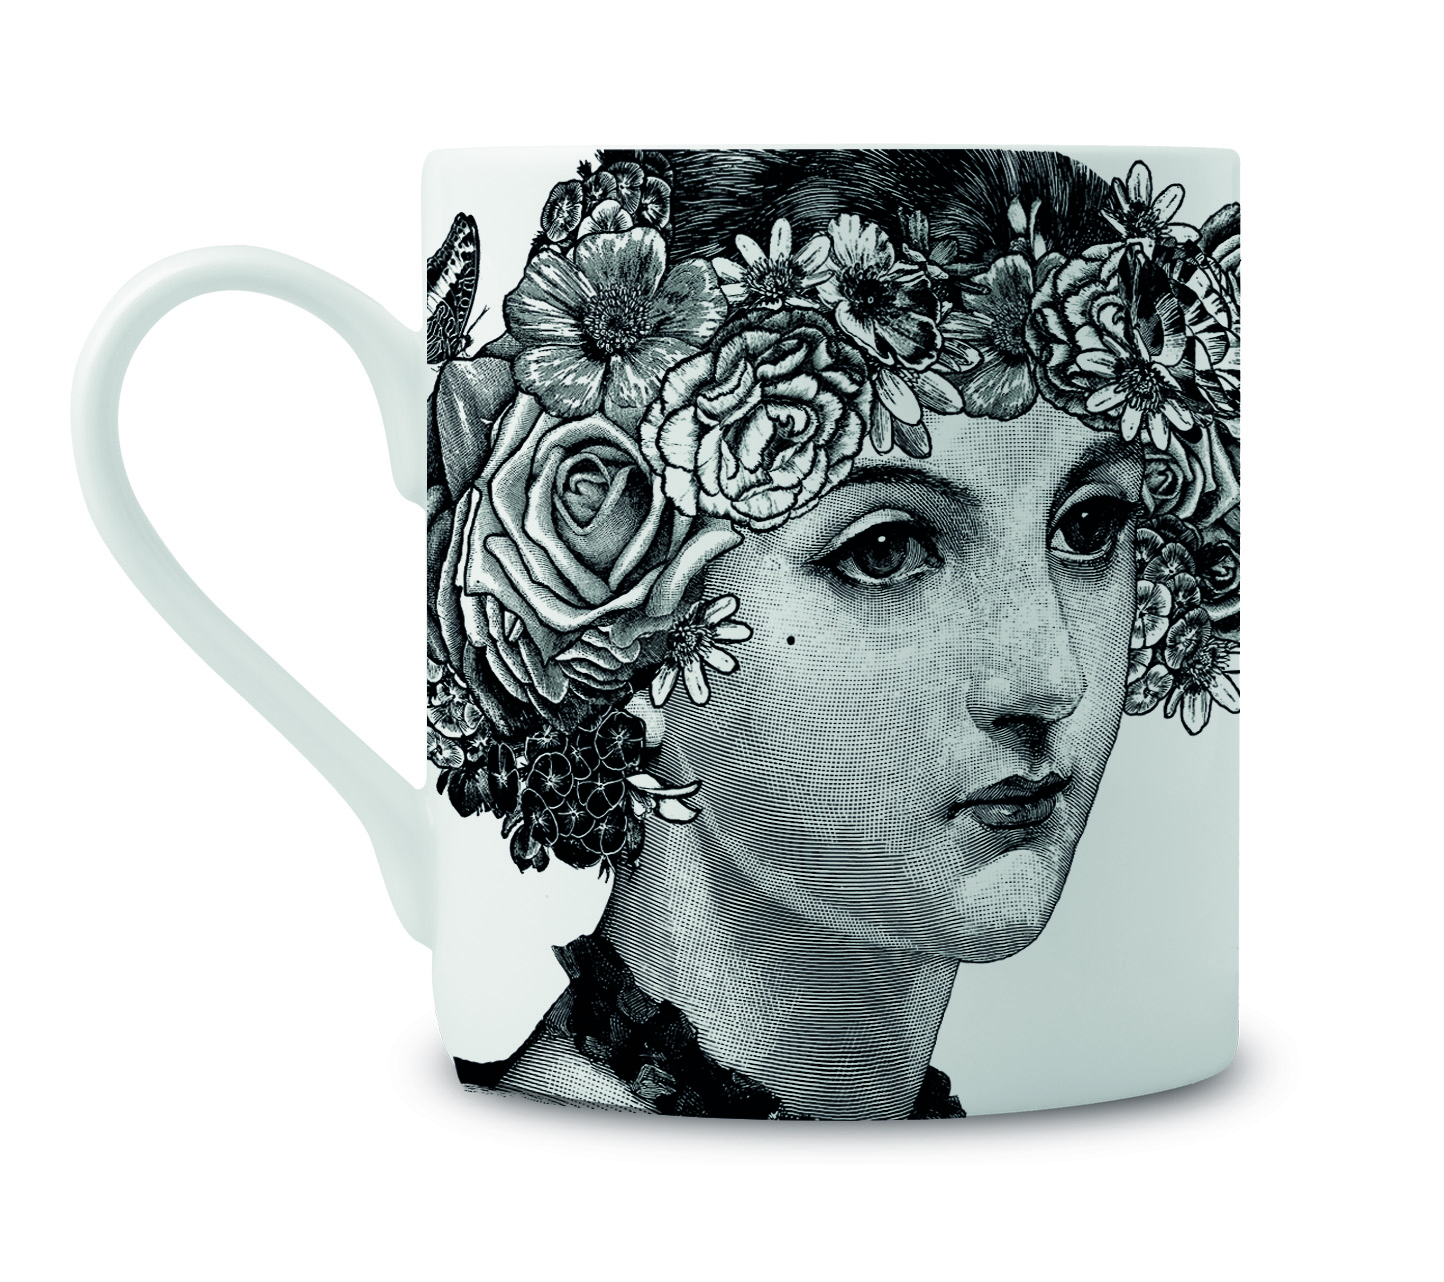 https://www.chaseandwonder.com/collections/fine-china-mugs/products/flower-lady-china-mug